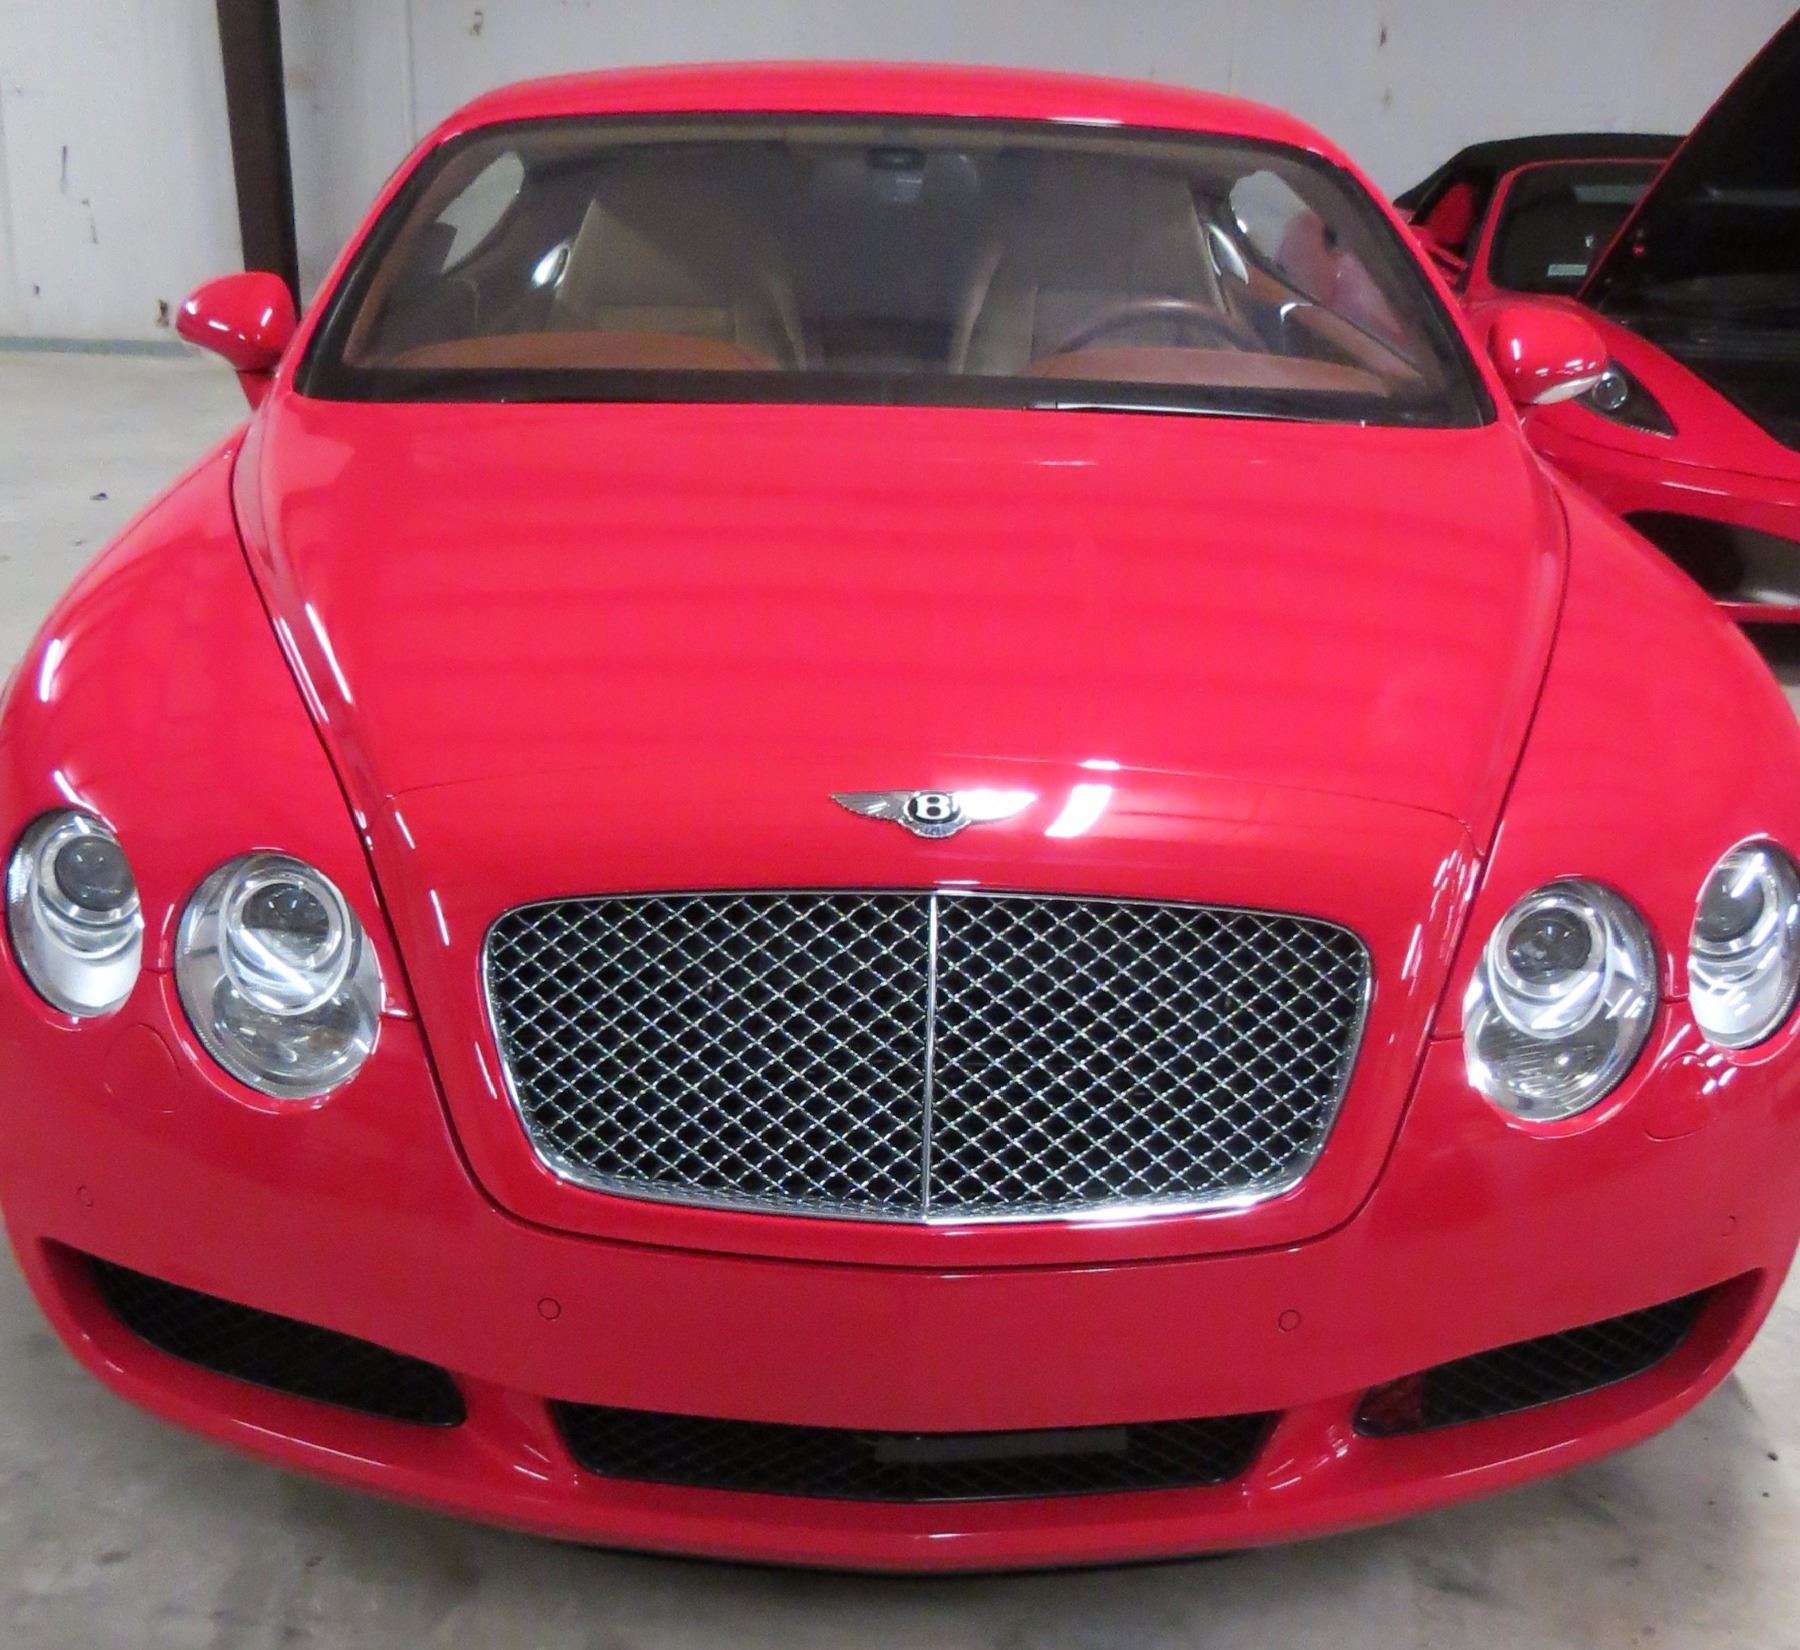 2005 Bentley Continental GT AWD Coupe; 6.0 Liter Twin